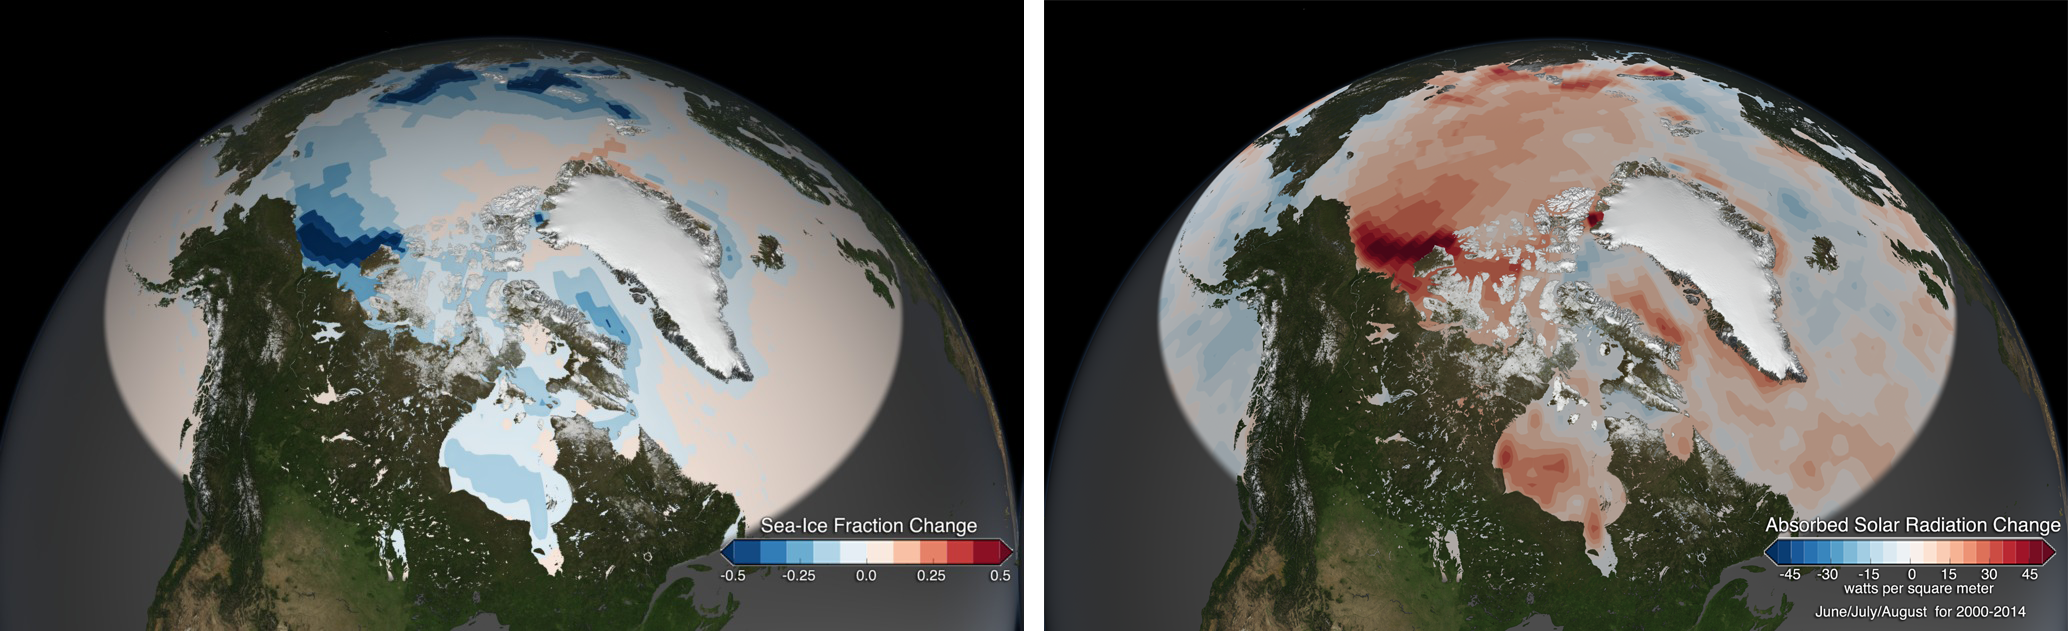 sea_ice_fraction_change_and_absorbed_solar_radiation_change[1]